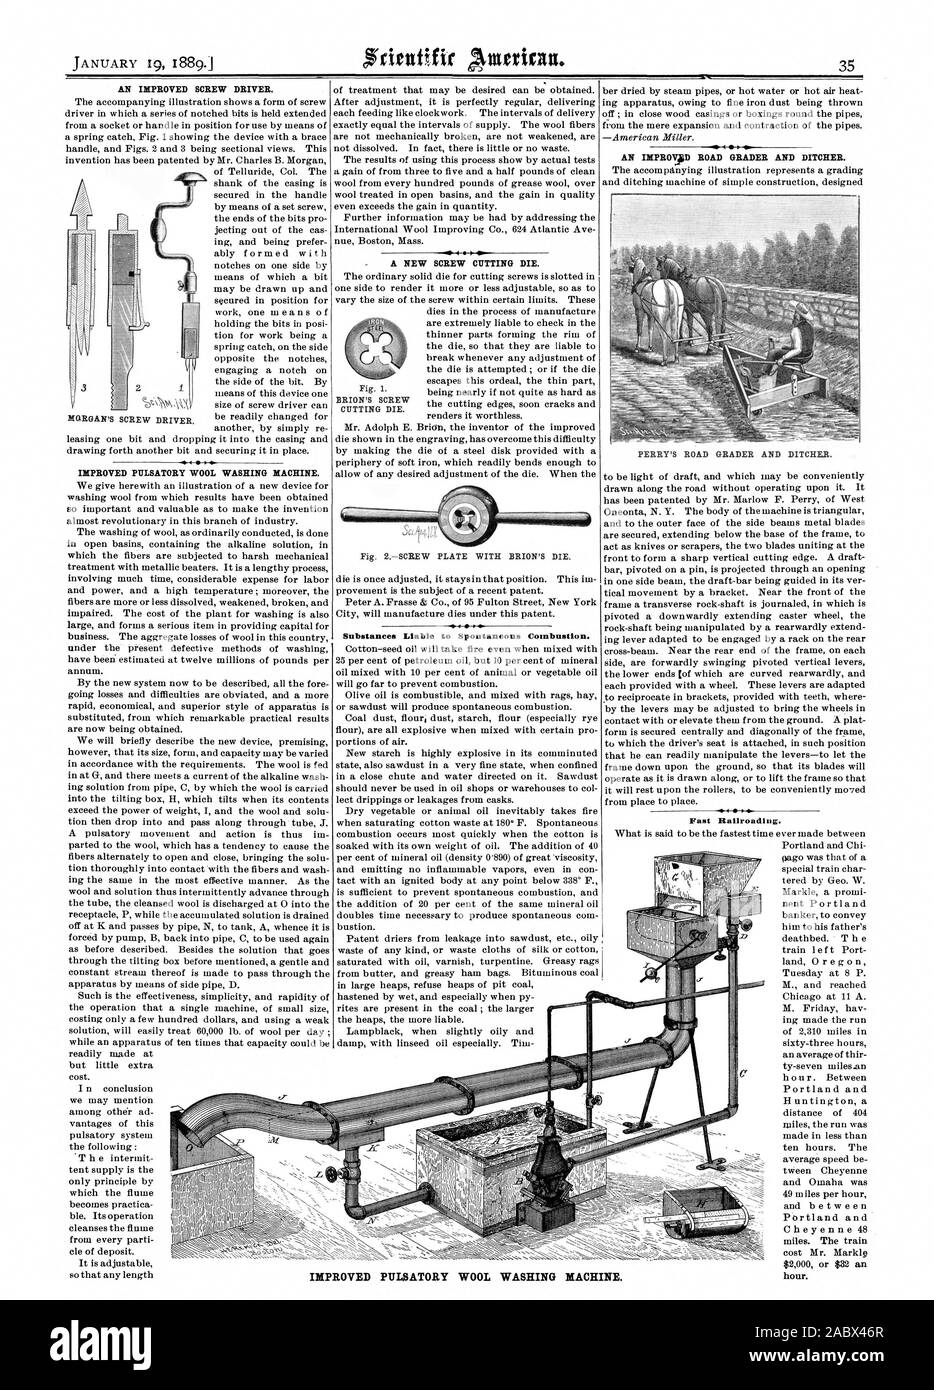 AN IMPROVED SCREW DRIVER. IMPROVED PITLSATORY WOOL WASHING MACHINE. A NEW SCREW CUTTING DIE. Fig. 2SCREW PLATE WITH BRION'S DIE. Substances Liable to Spontaneous Combustion. AN IBIPROVAD ROAD GRADER AND DITCHER. PERRY'S ROAD GRADER AND DITCHER. 2 MORGAN'S SCREW DRIVER. BRION'S SCREW CUTTING DIE. IMPROVED PULSATORY WOOL WASHING MACHINE. Fast Railroading. hour., scientific american, 1889-01-19 Stock Photo